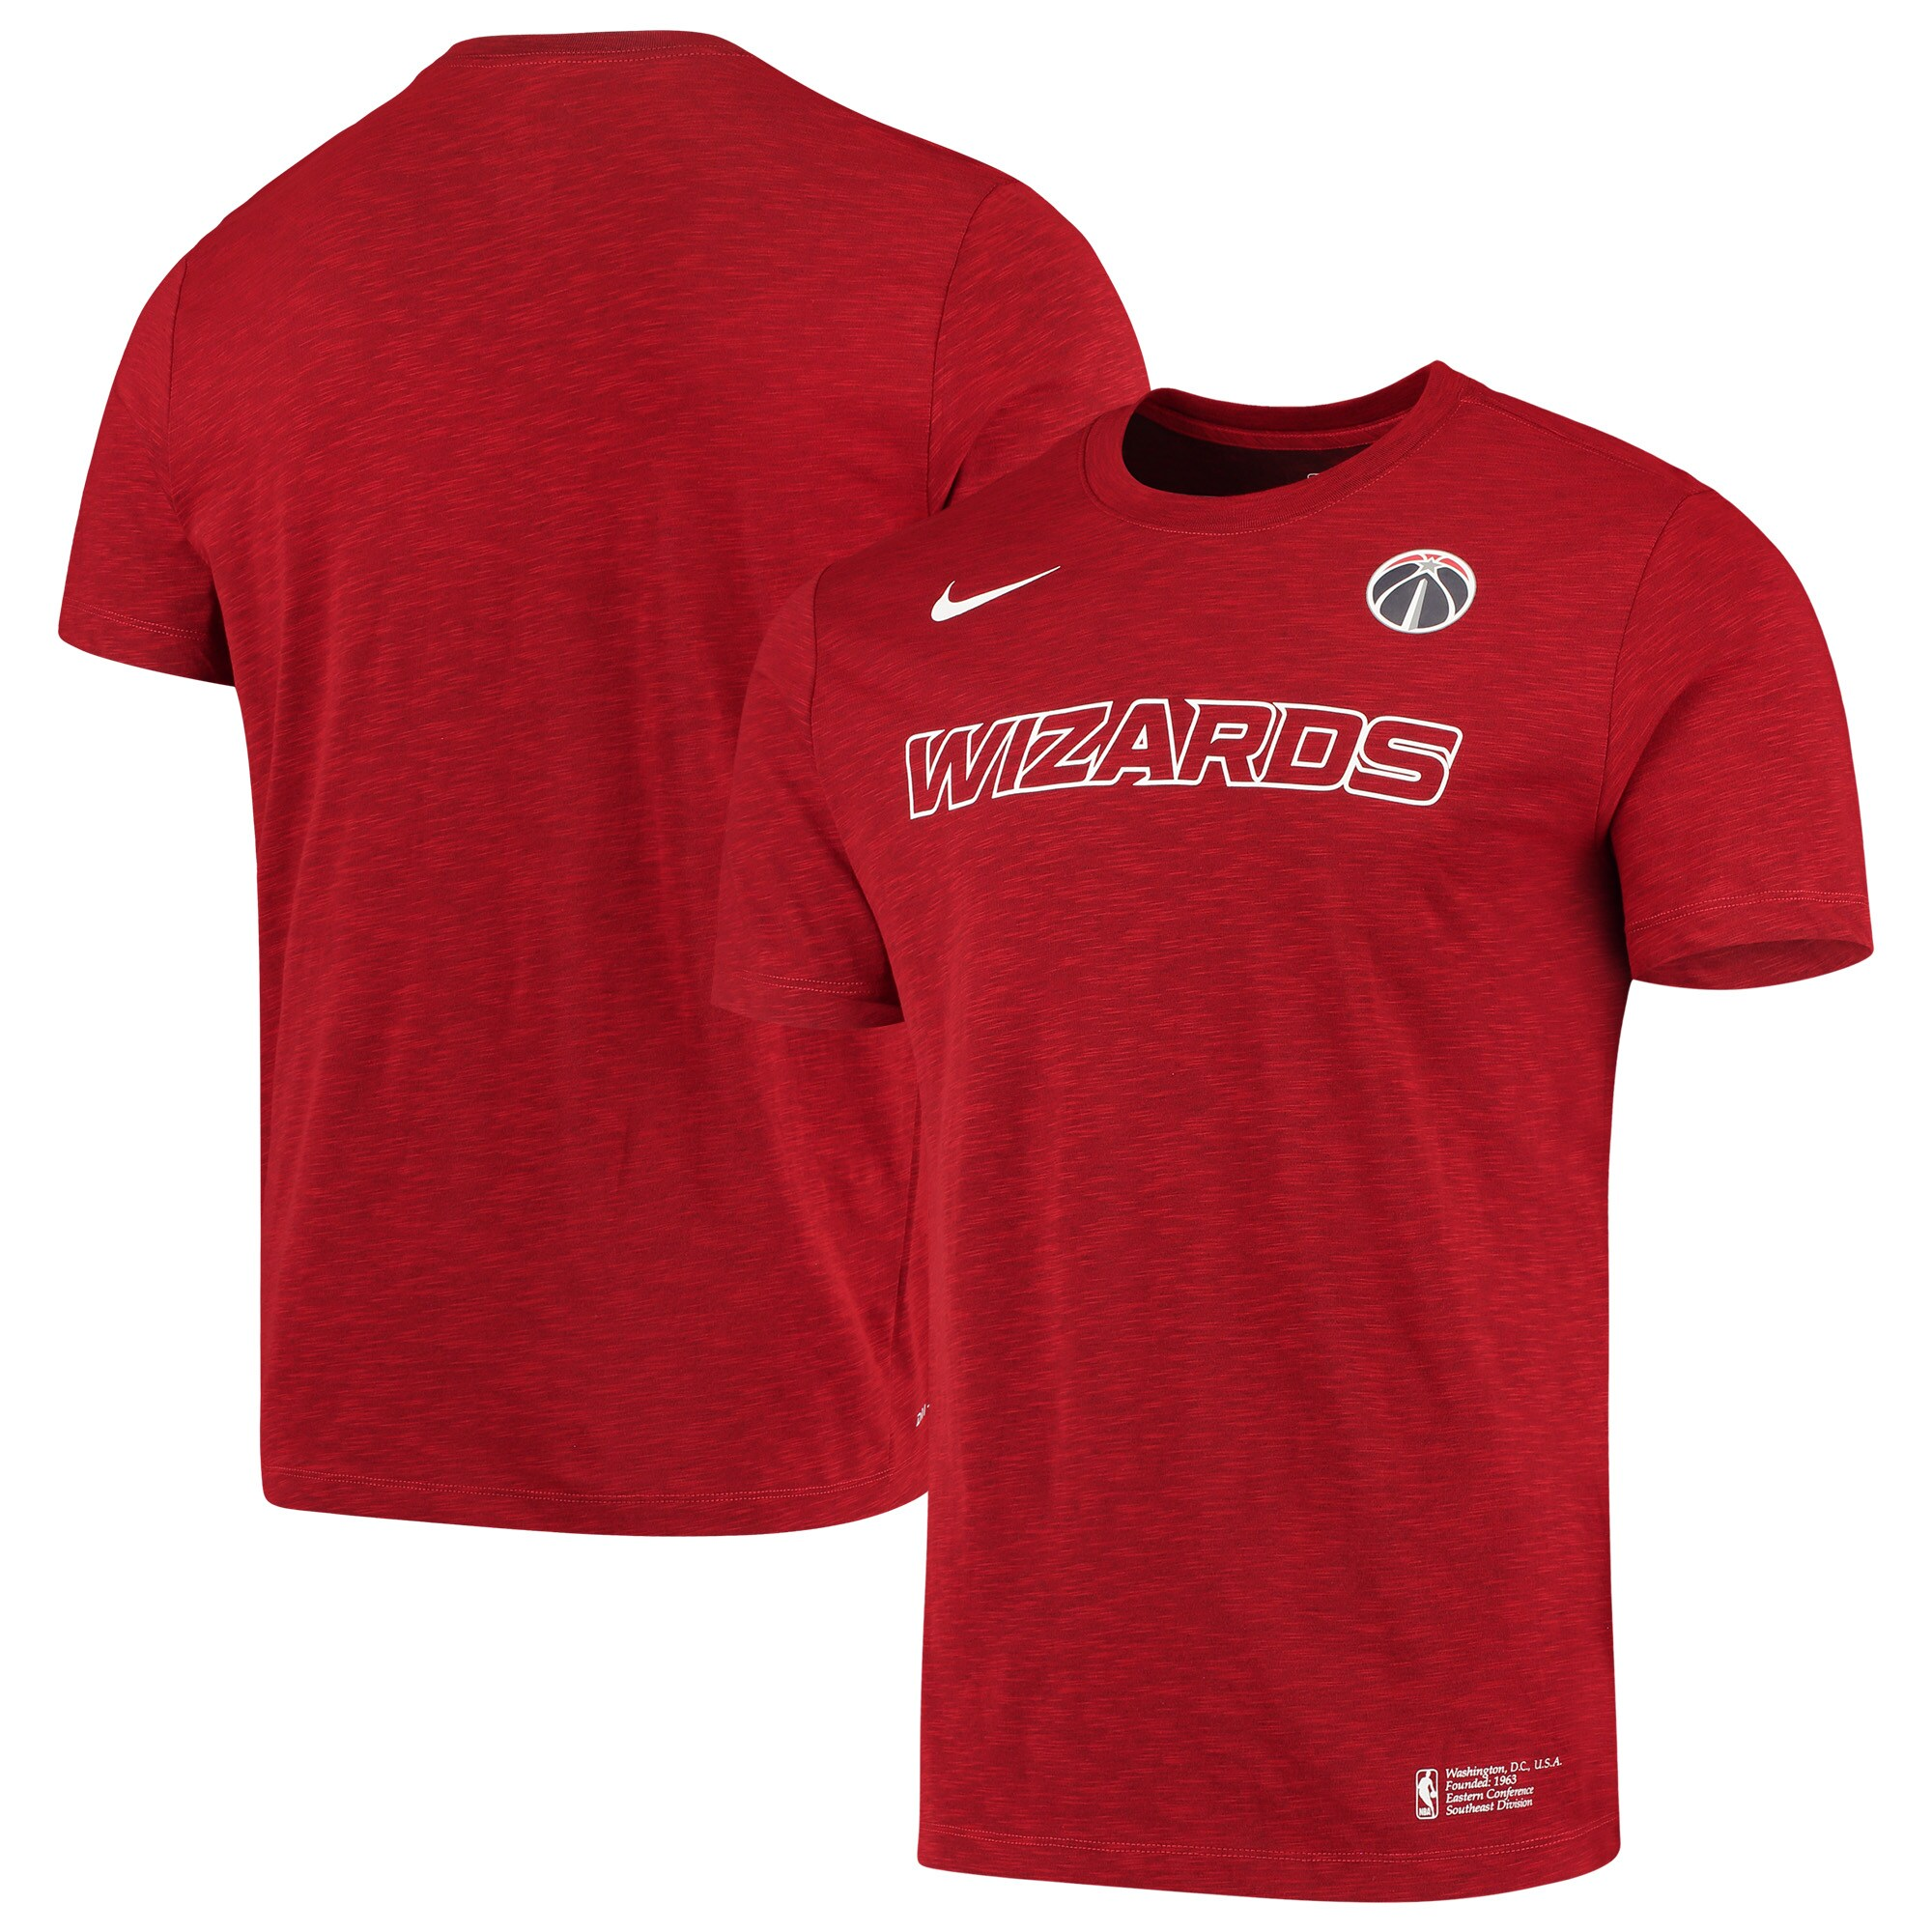 Washington Wizards Nike Essential Facility Performance T-Shirt - Heathered Red